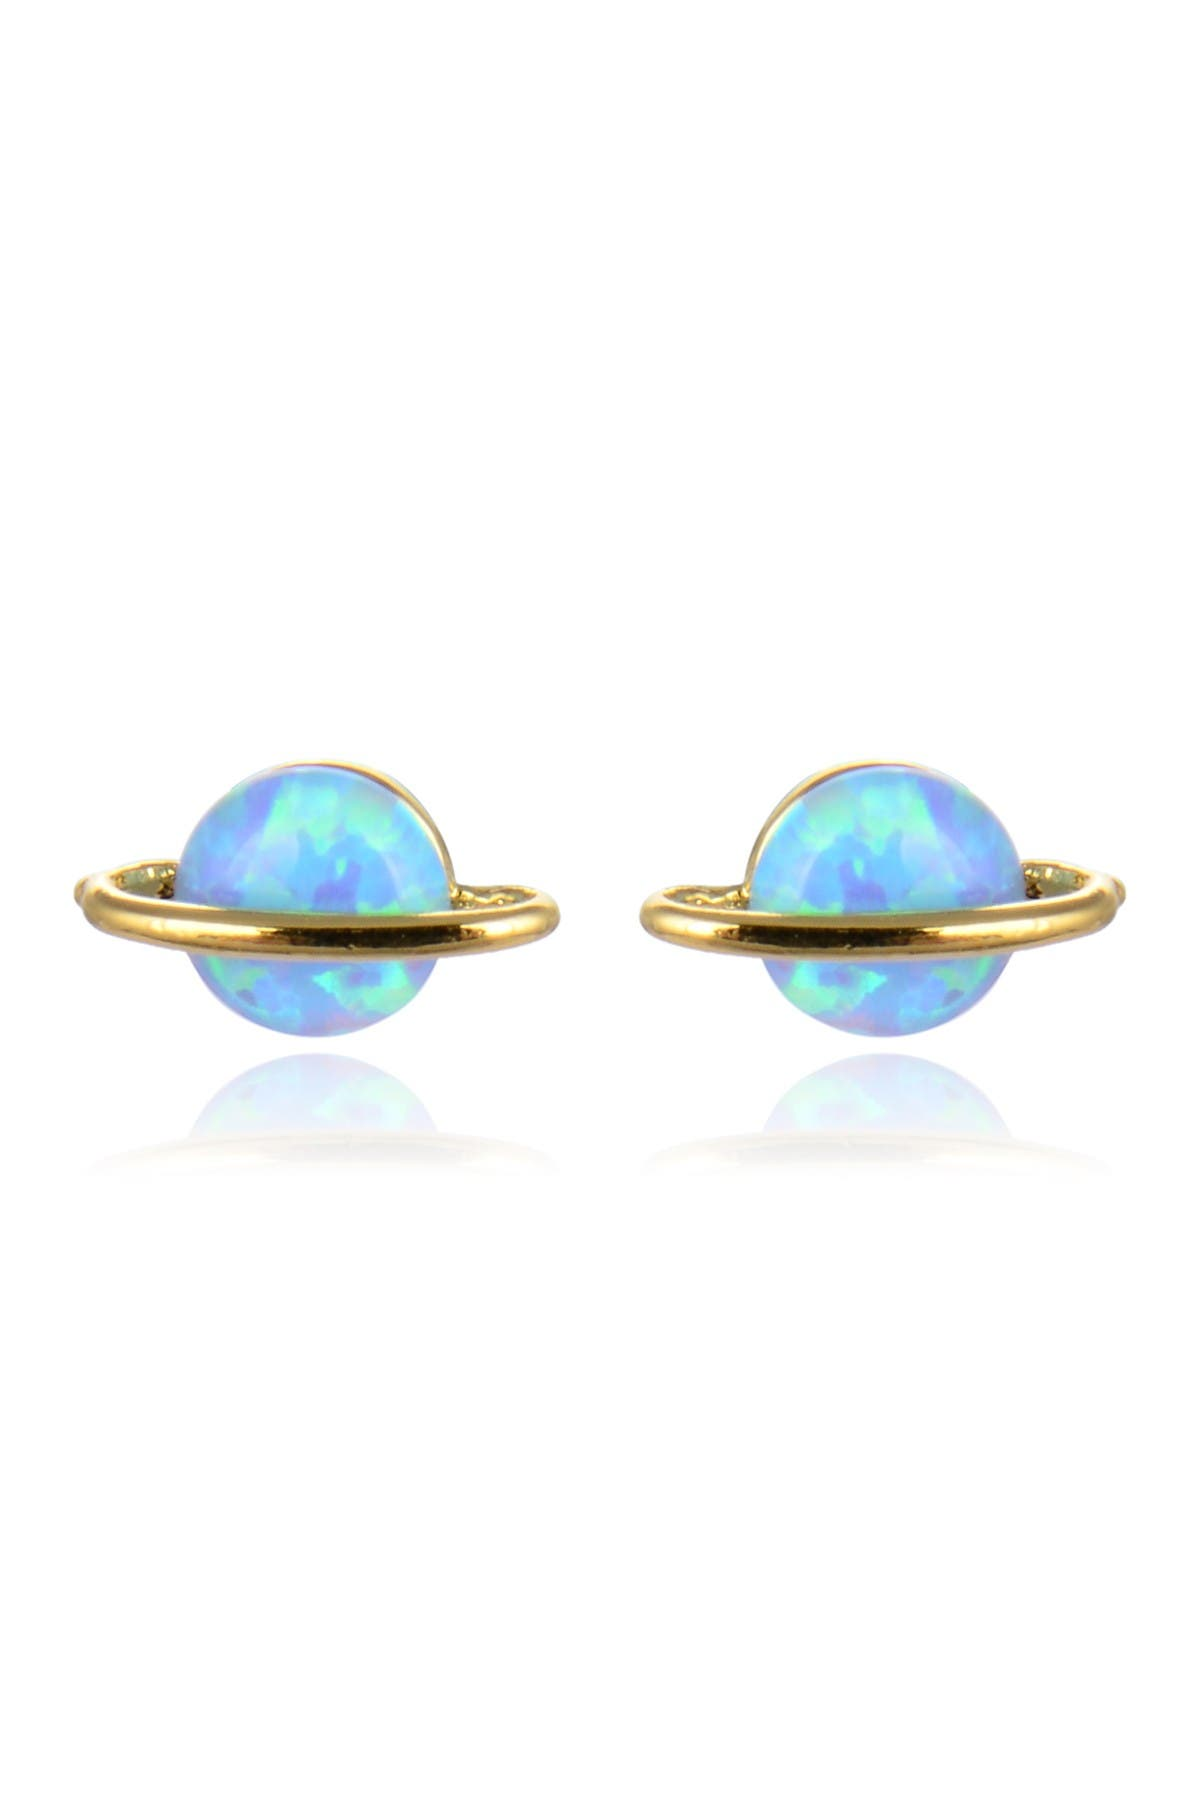 Eye Candy Los Angeles 14K Gold Plated Opal Saturn Stud Earrings at Nordstrom Rack